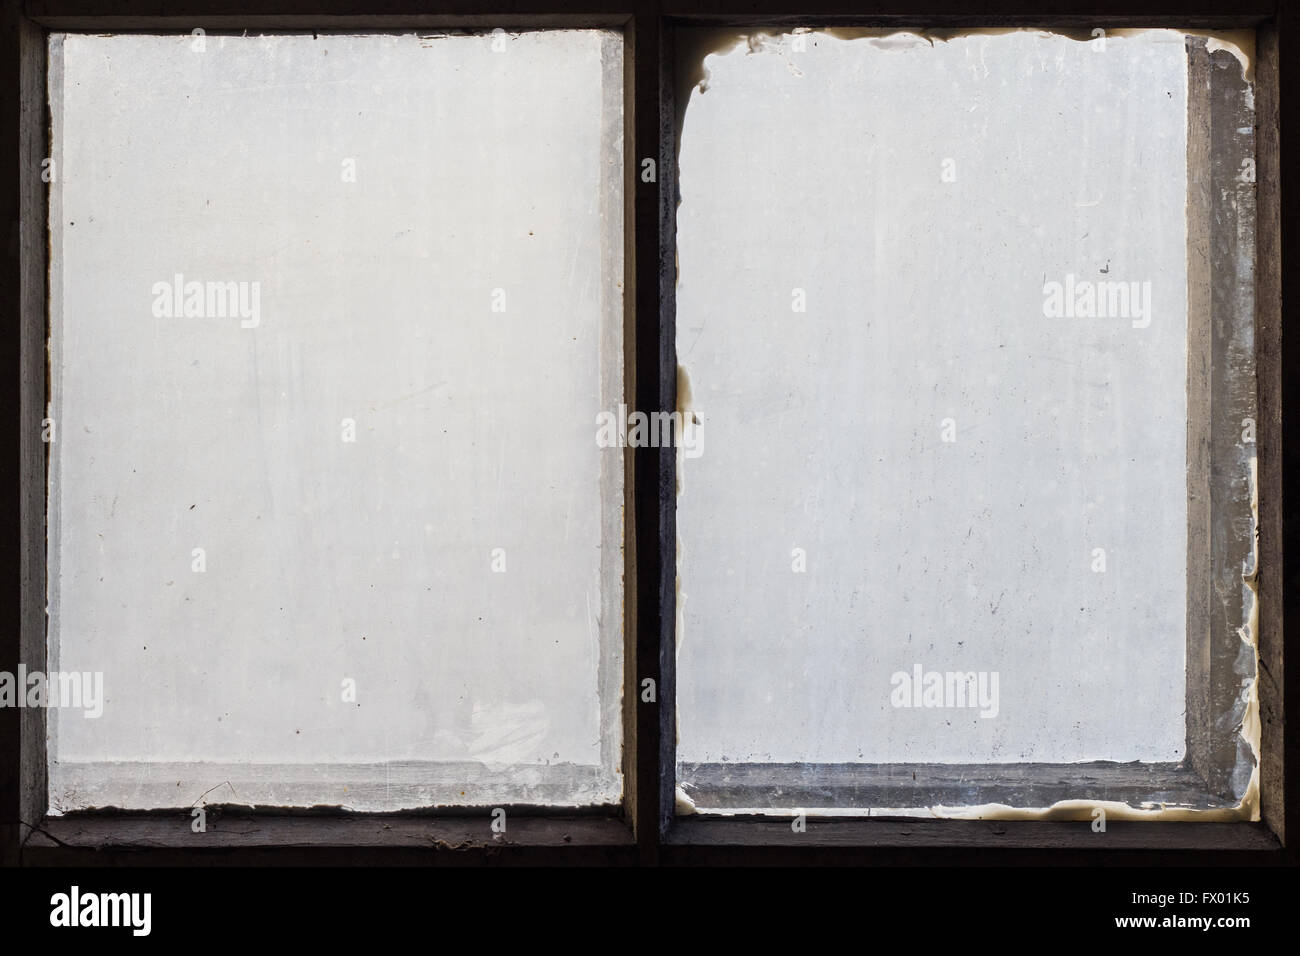 Dirty and opaque window glasses and old wooden frames. - Stock Image